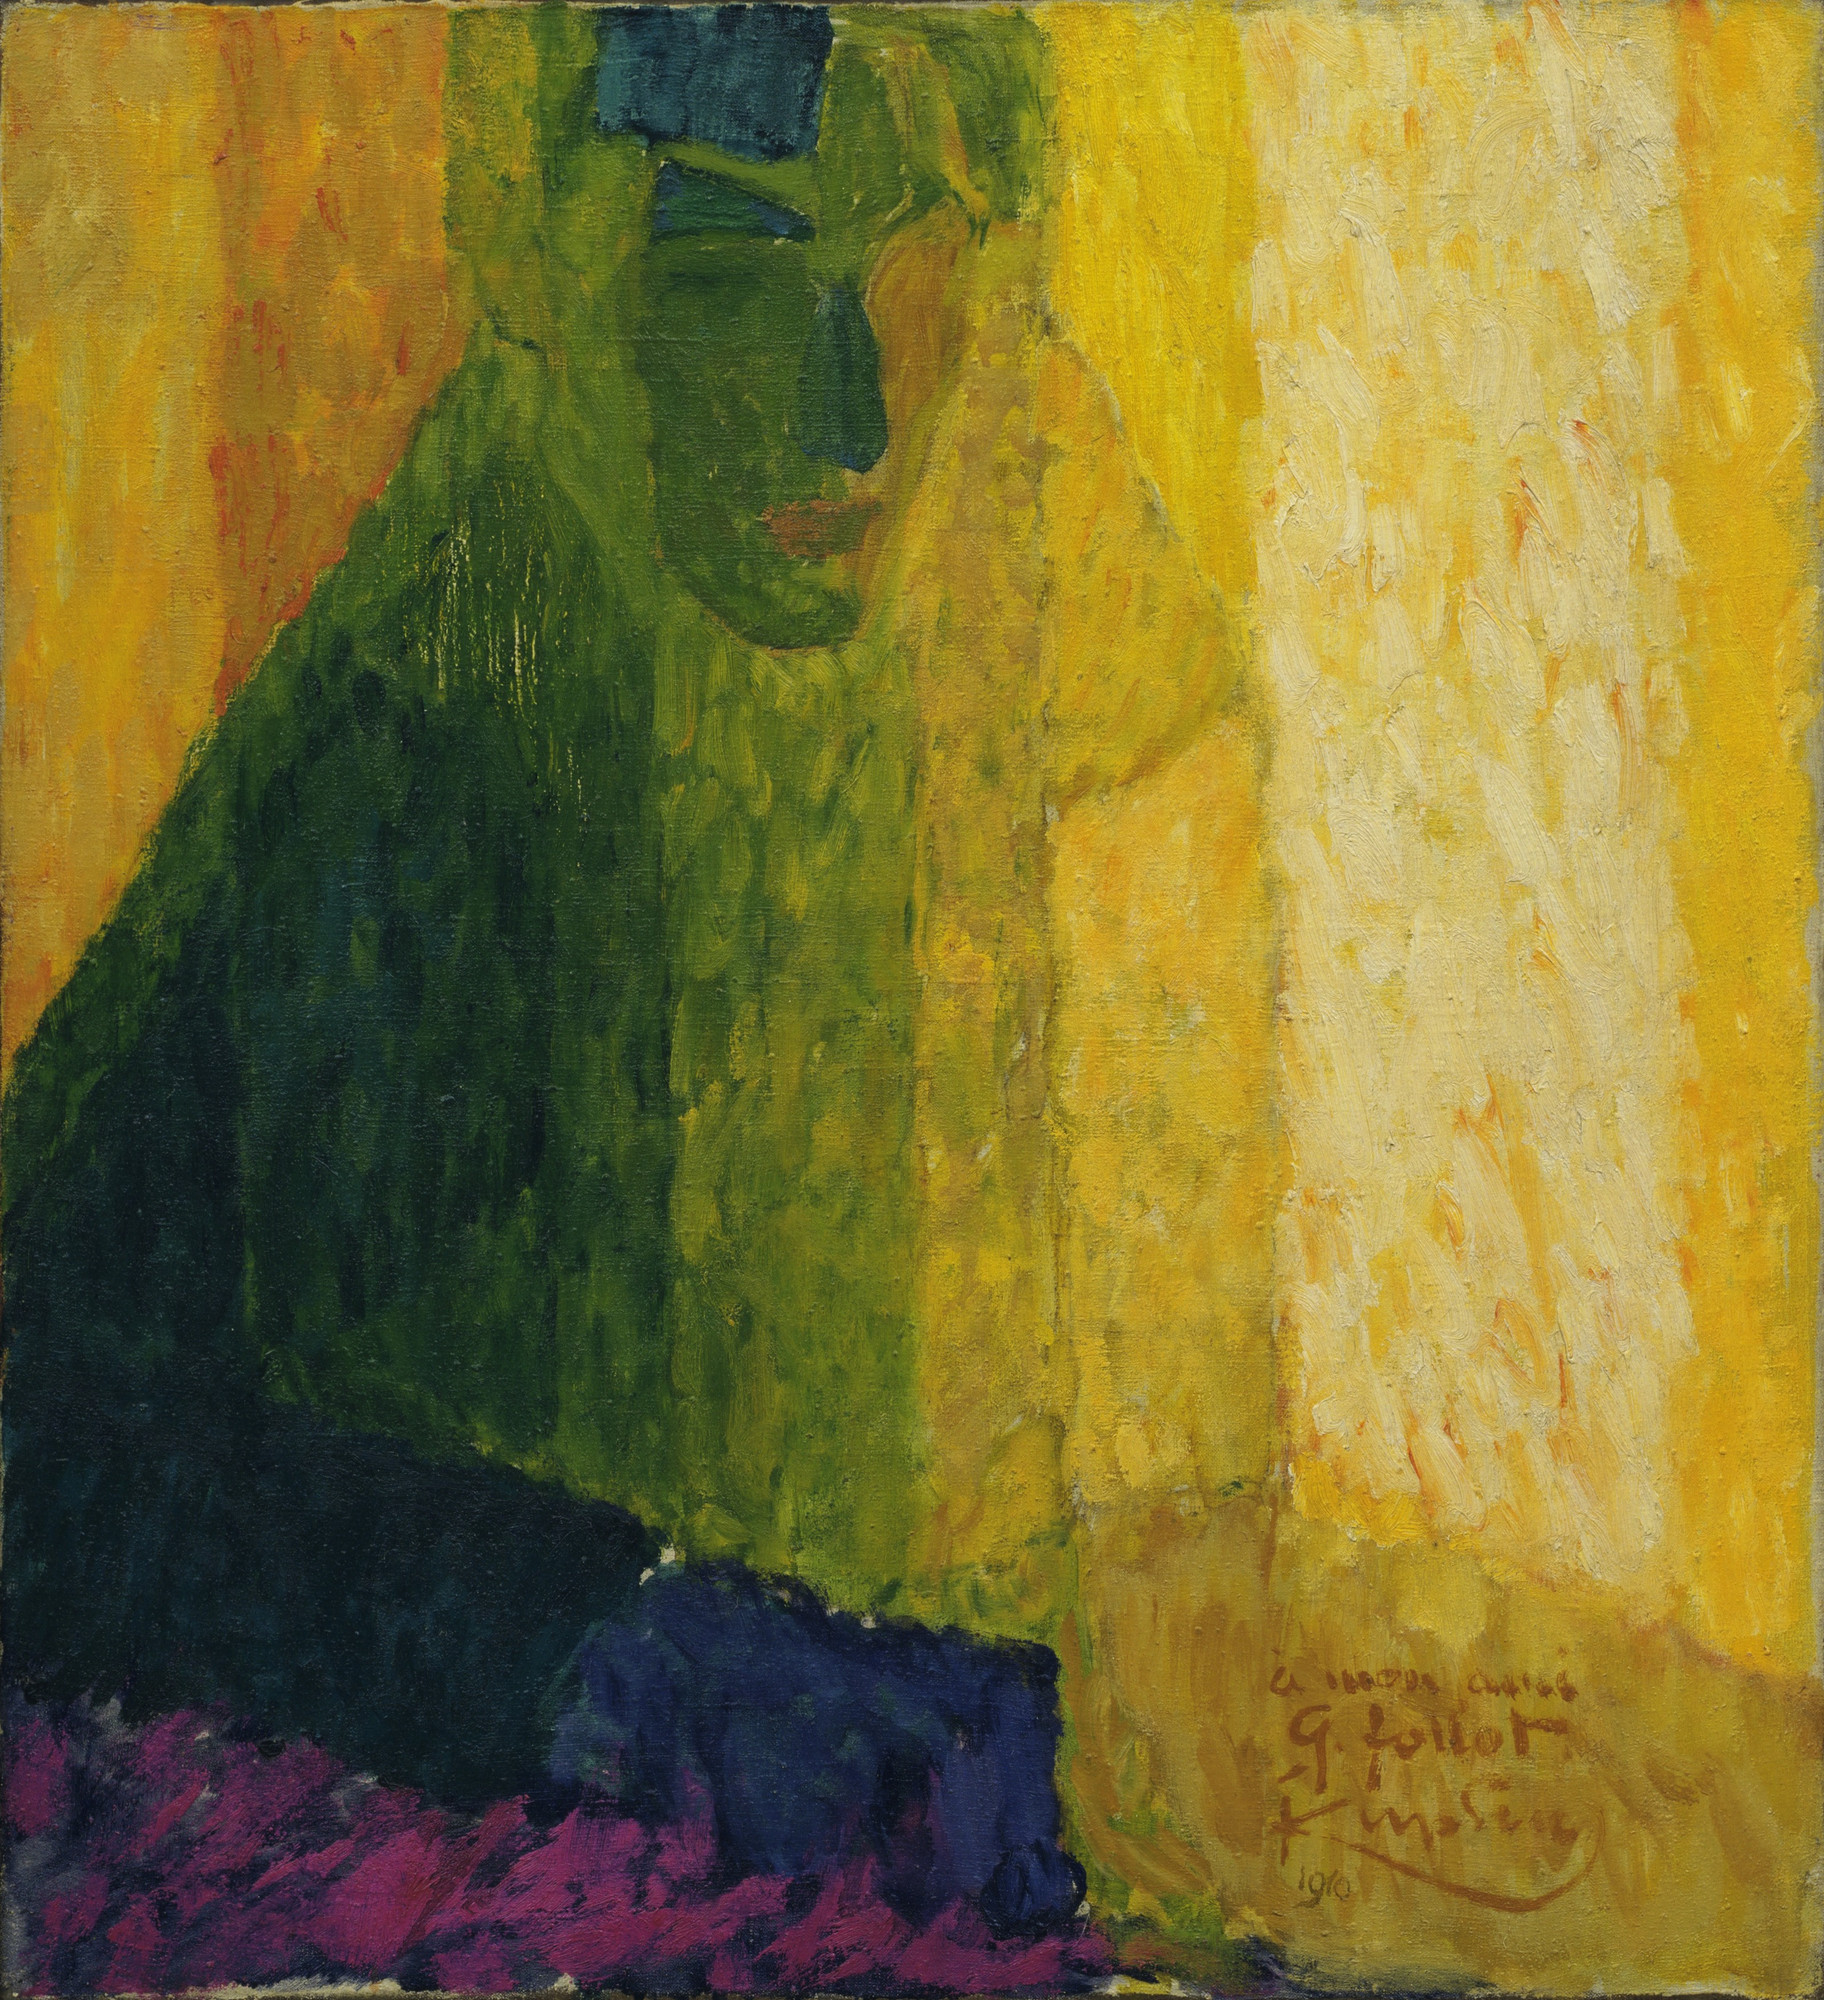 František Kupka. The Musician Follot. 1911? (dated on painting 1910)